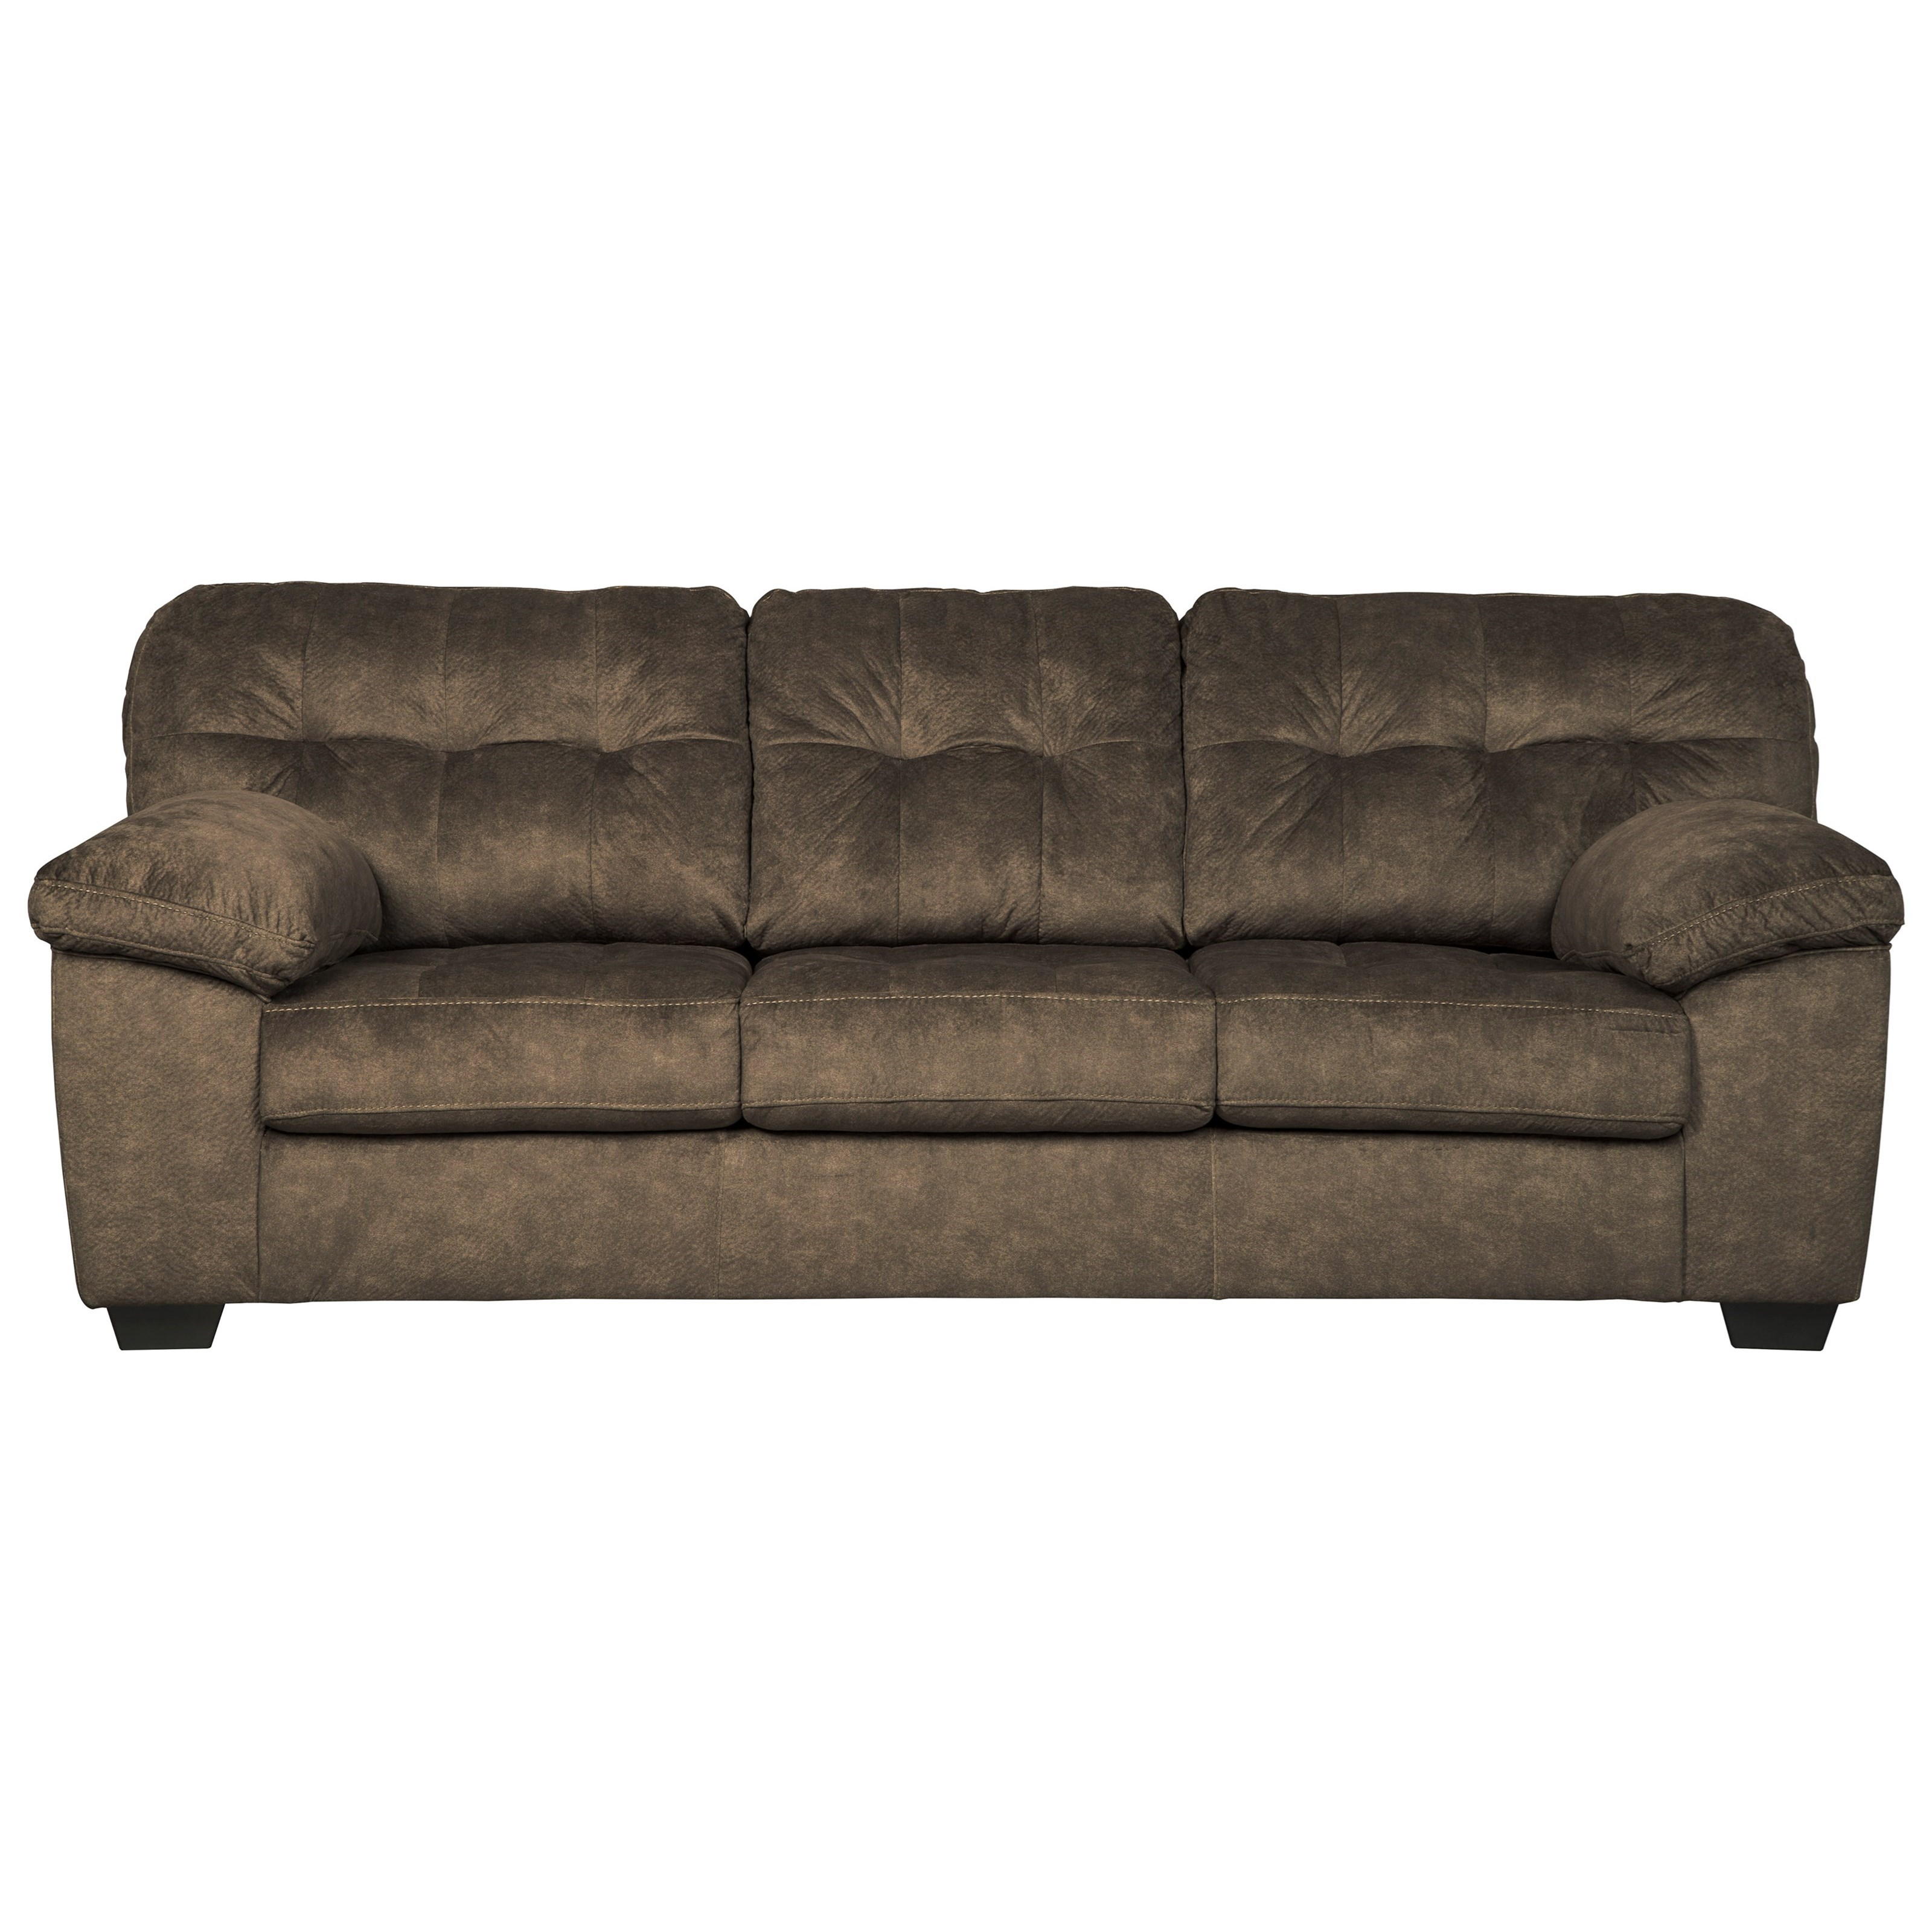 Accrington Queen Sofa Sleeper by Signature Design by Ashley at Value City Furniture